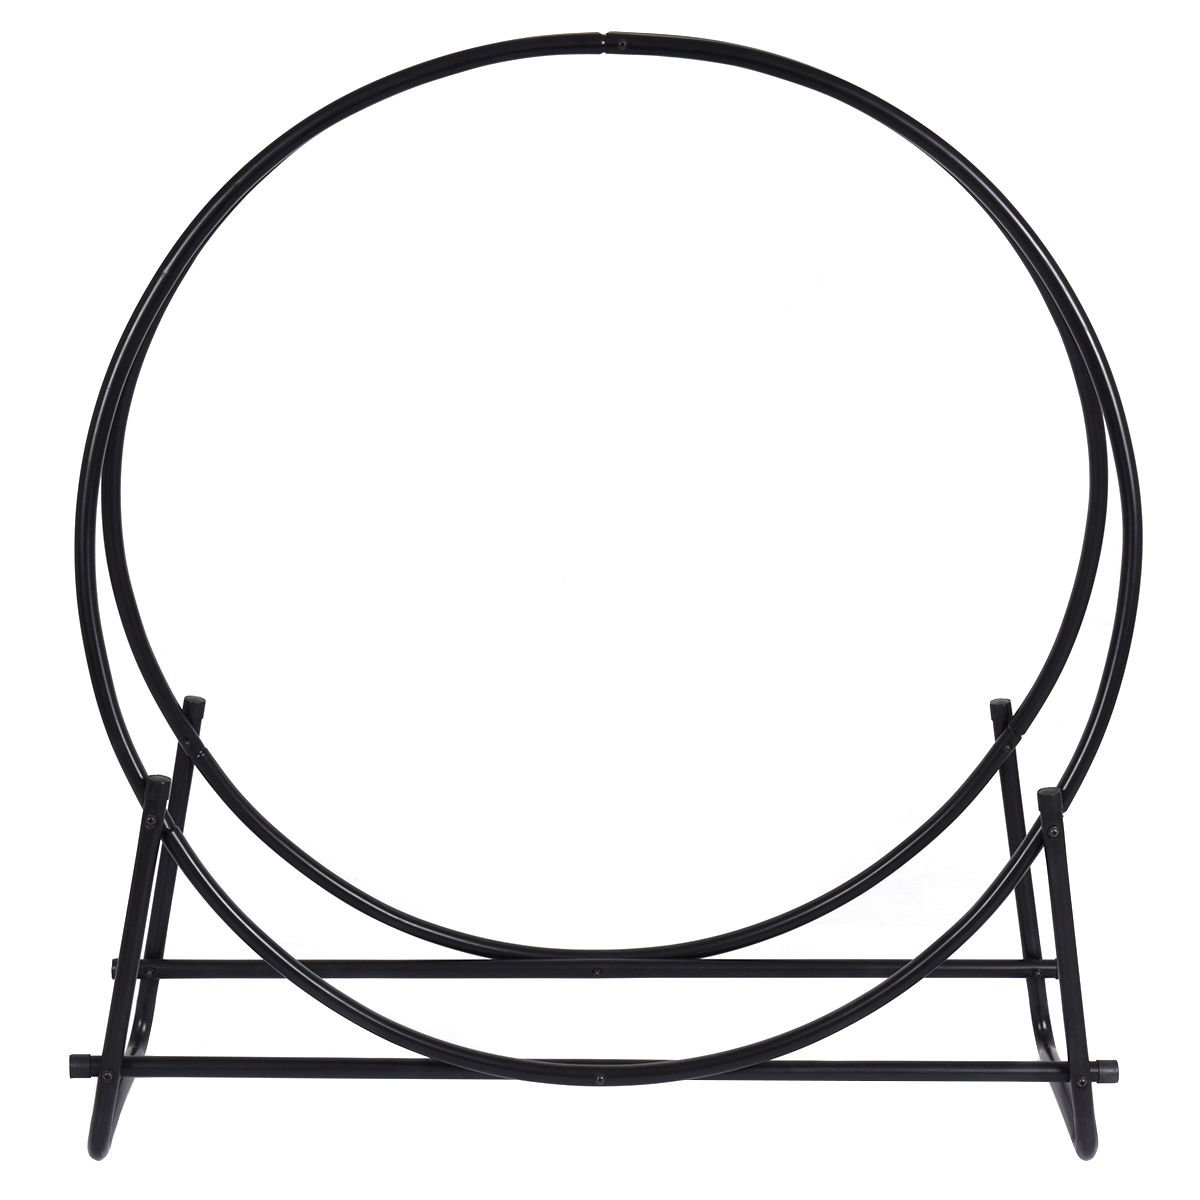 Maximumstore 40-Inch Tubular Steel Log Hoop Firewood Storage Rack Holder Round Display